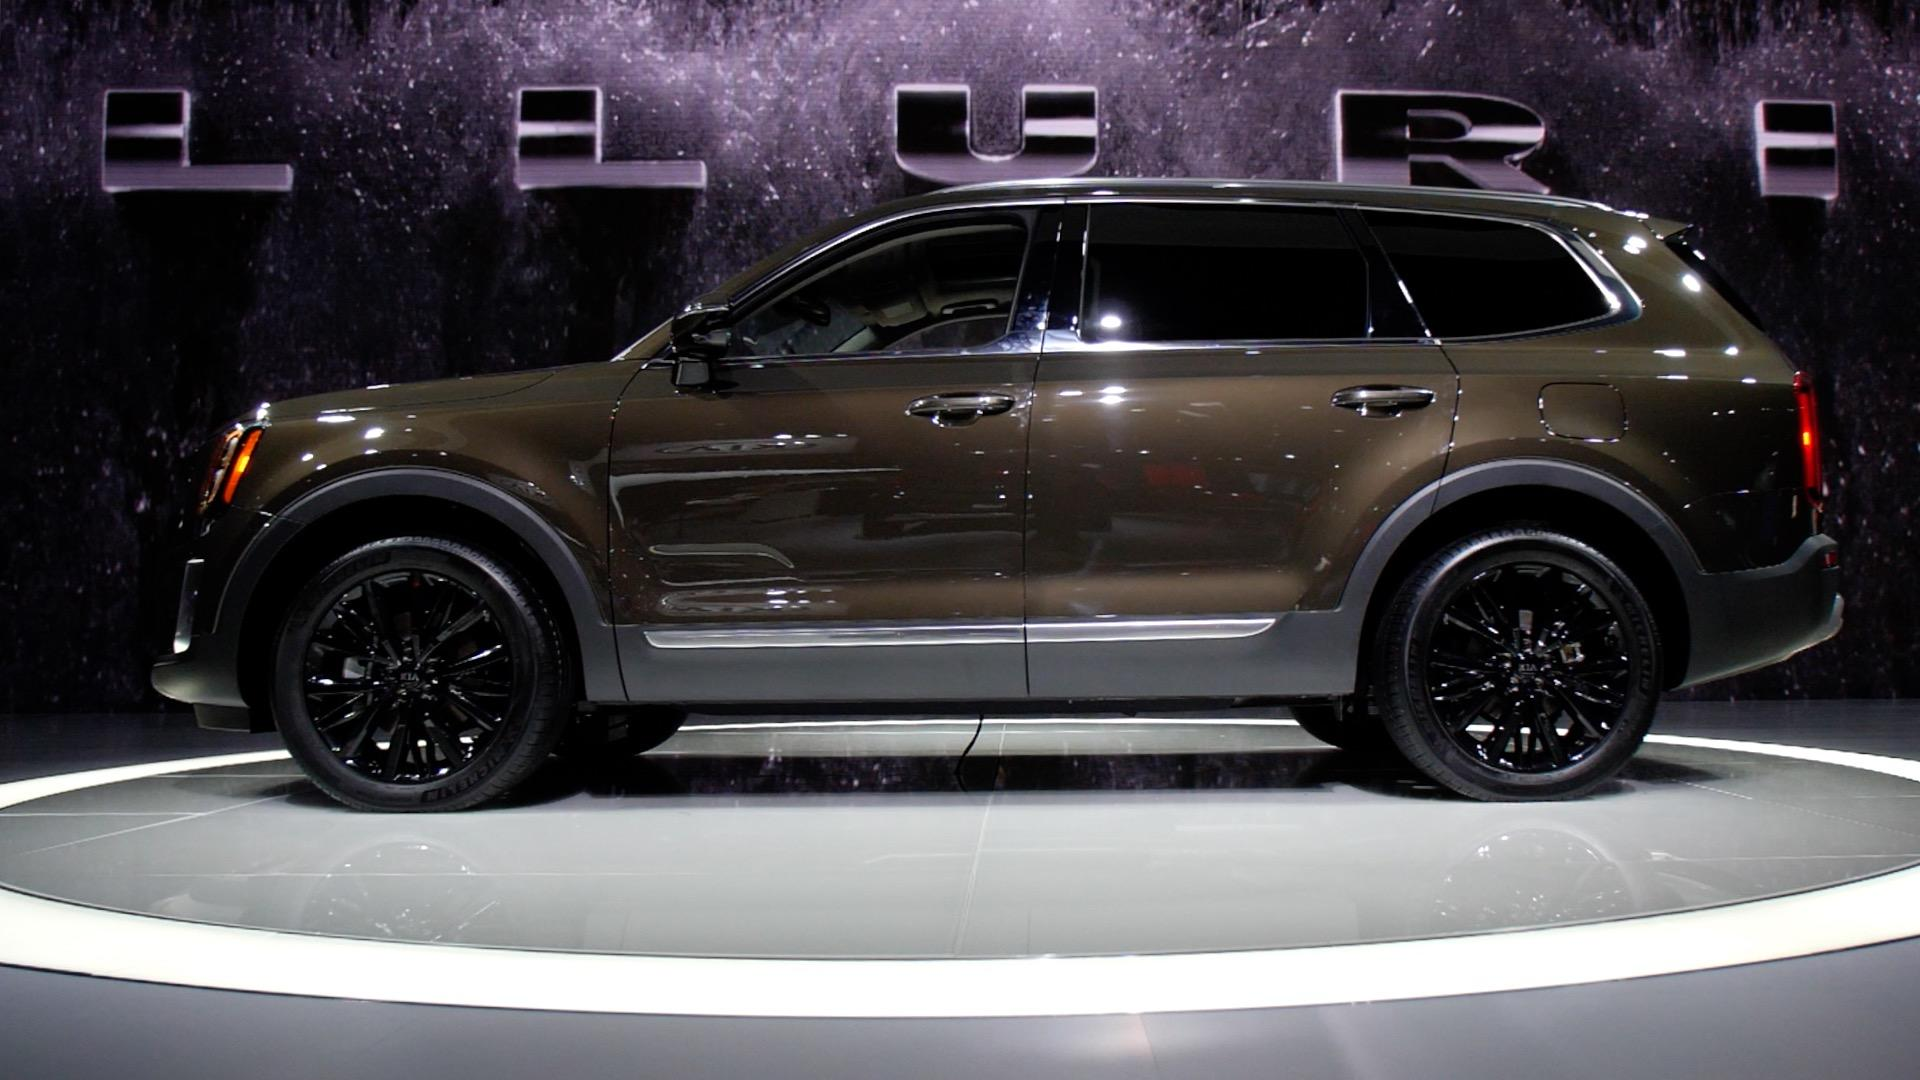 Video: Big, boxy Telluride joins the Kia SUV lineup